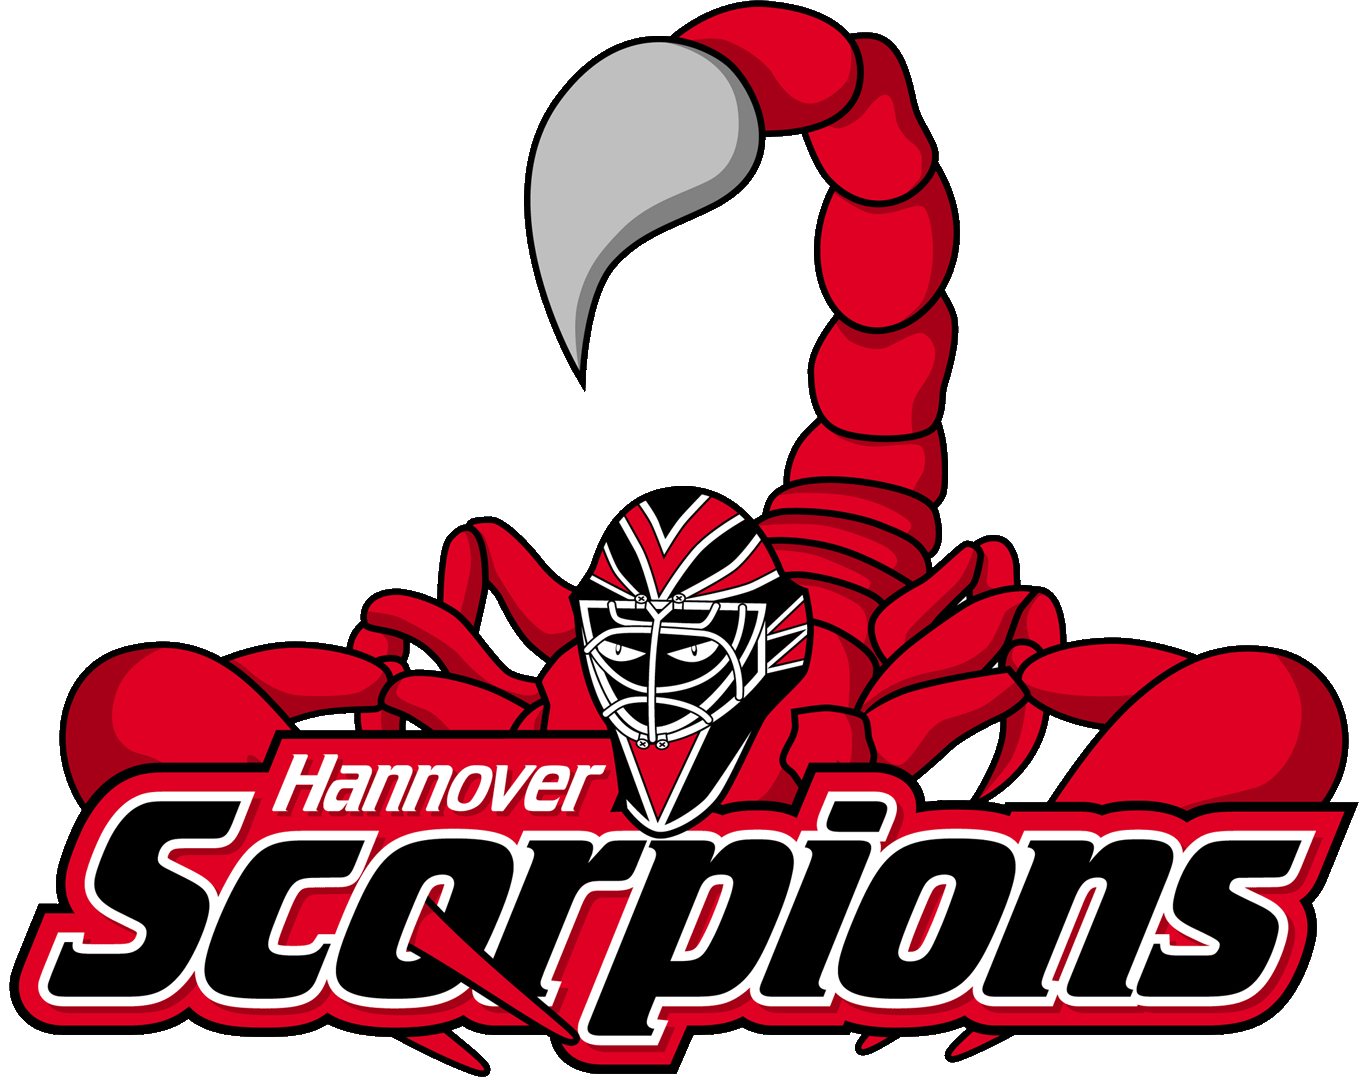 hannoverscorpions